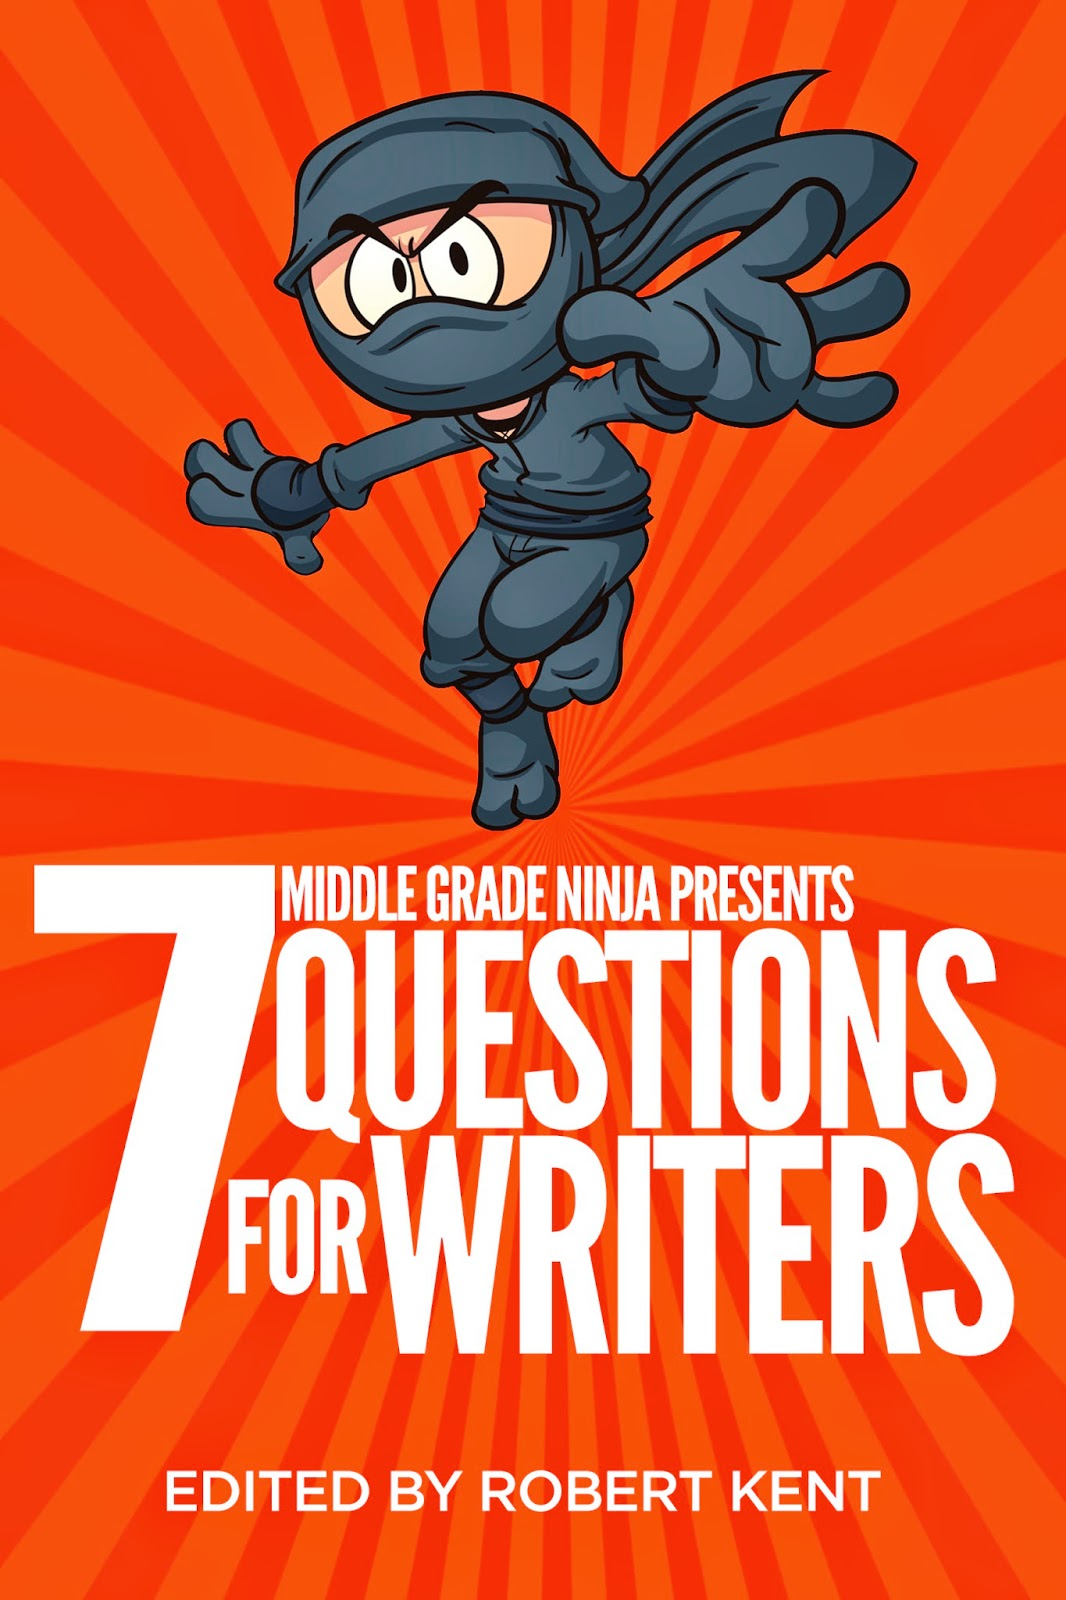 middle grade ninja interviews writers 7 questions for writers is a series of interviews conducted some of today s best writers every writer faces the same 7 questions and i have not edited